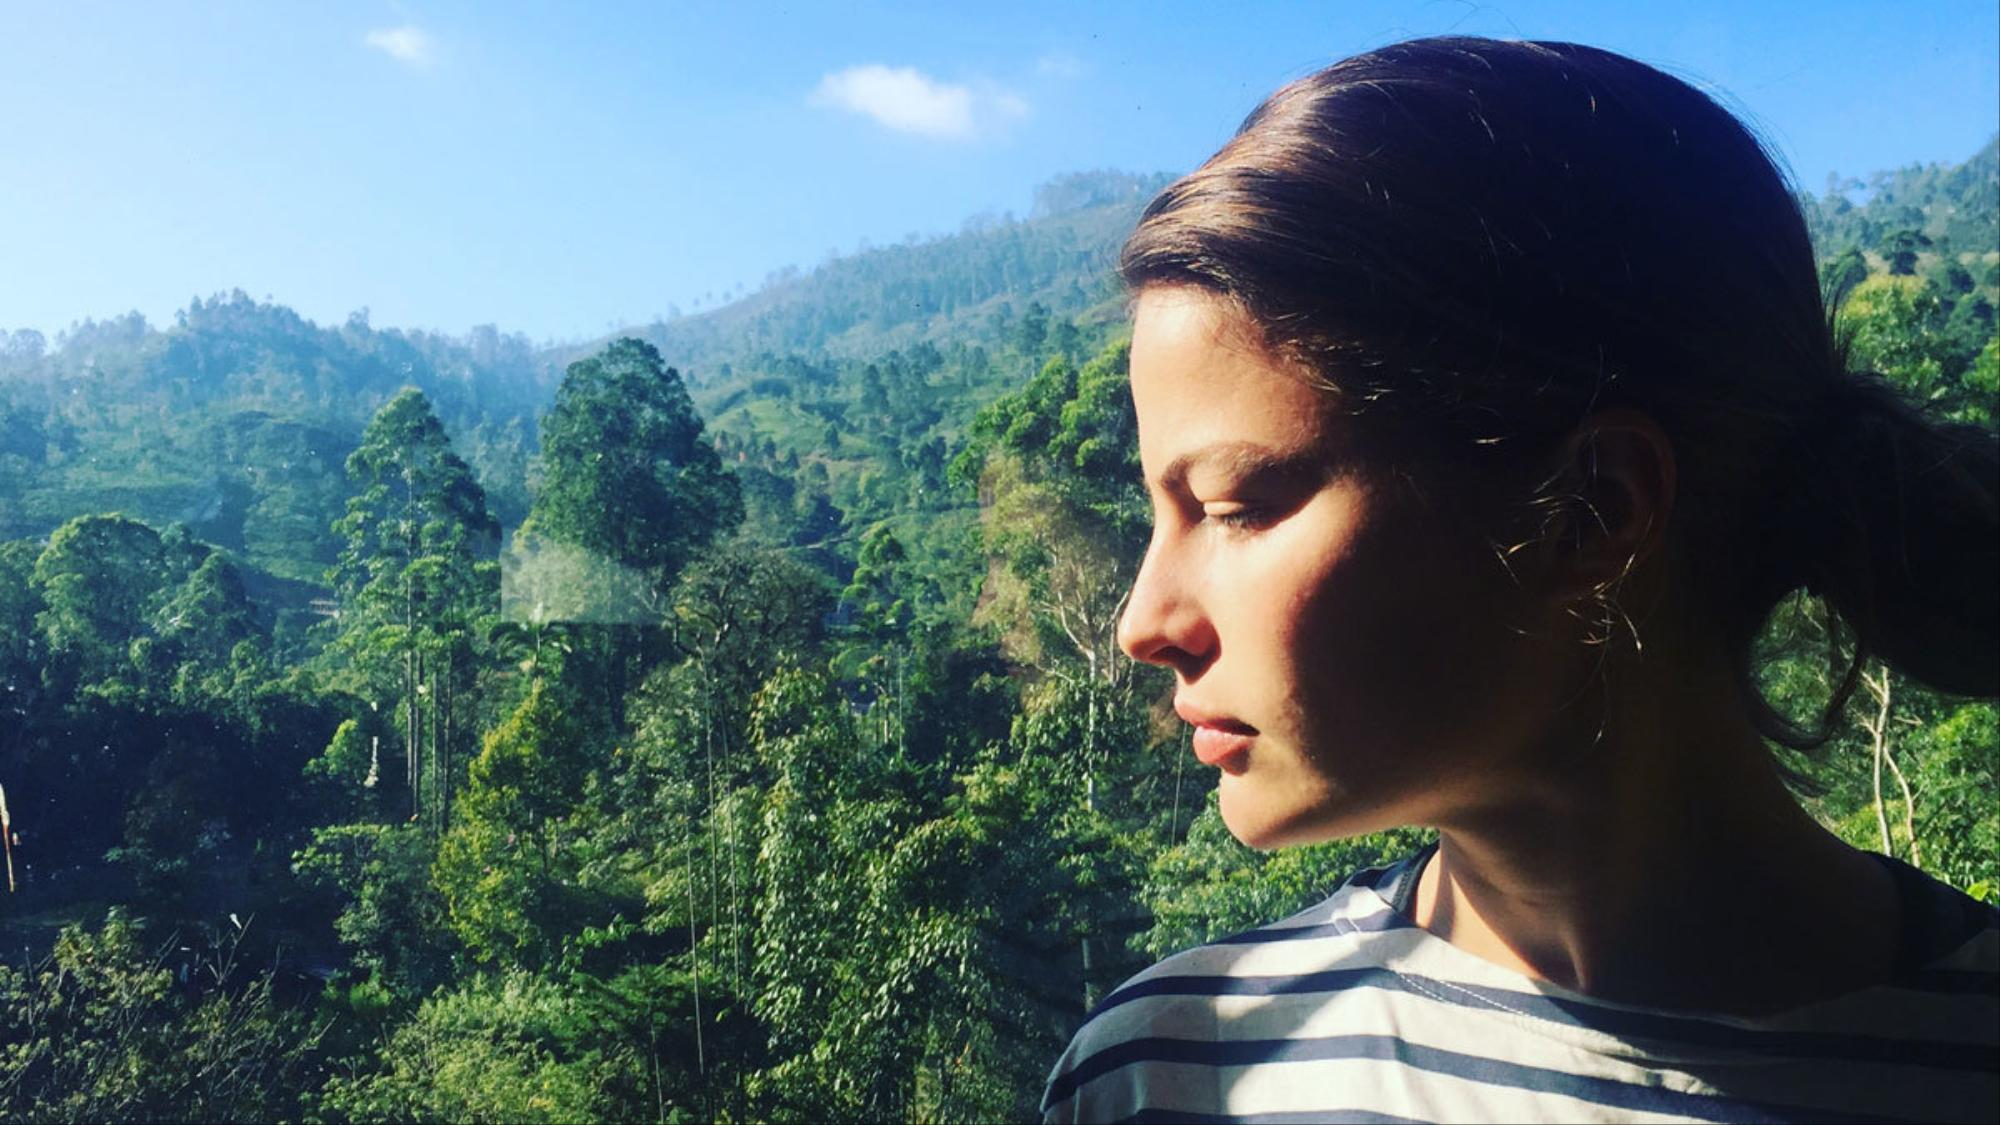 cameron russell's rainforest diary